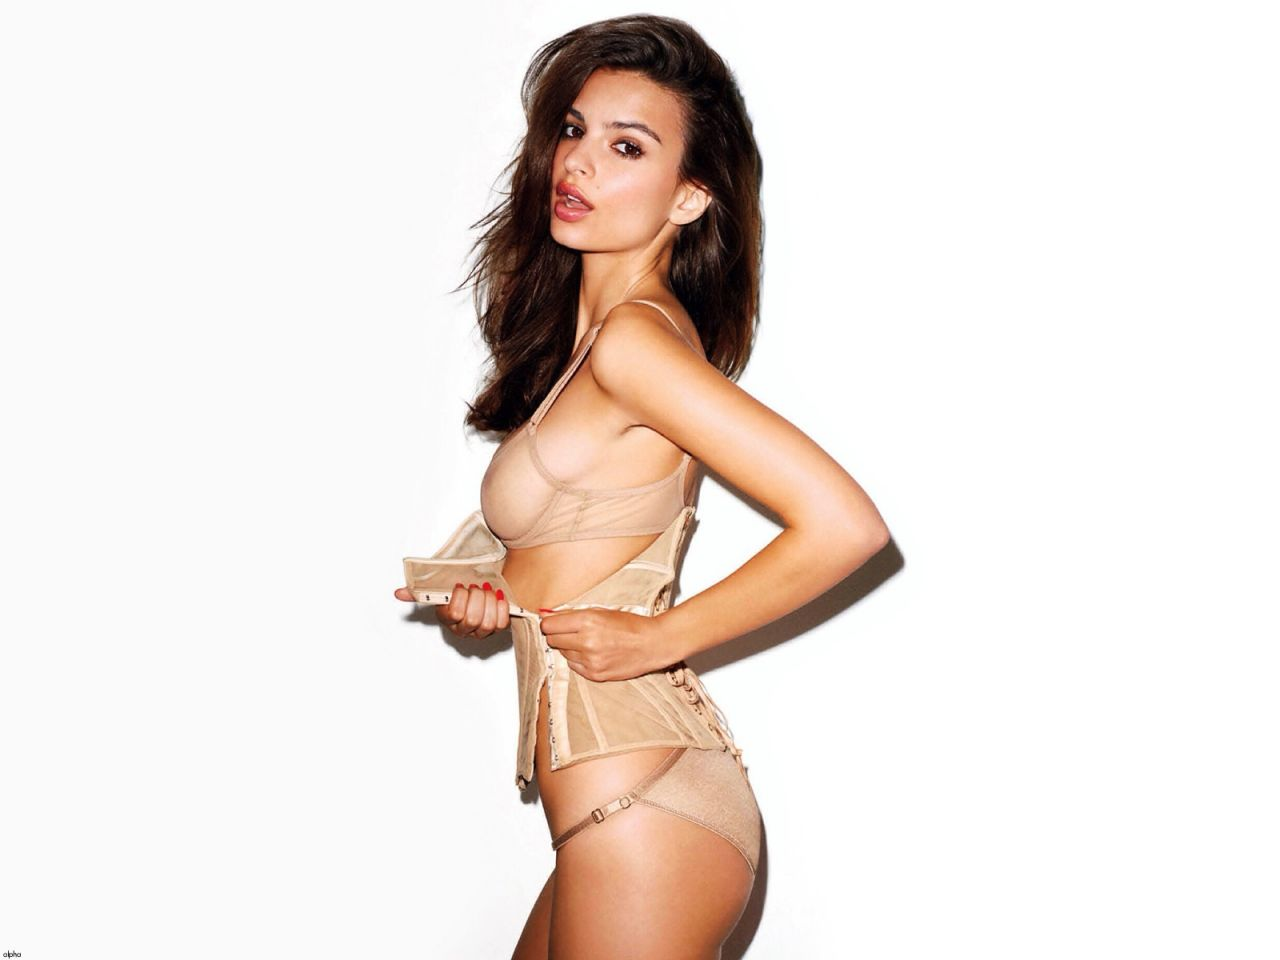 Emily Ratajkowski Hot Wallpapers Part II (+3) Rosie Huntington Whiteley Hair